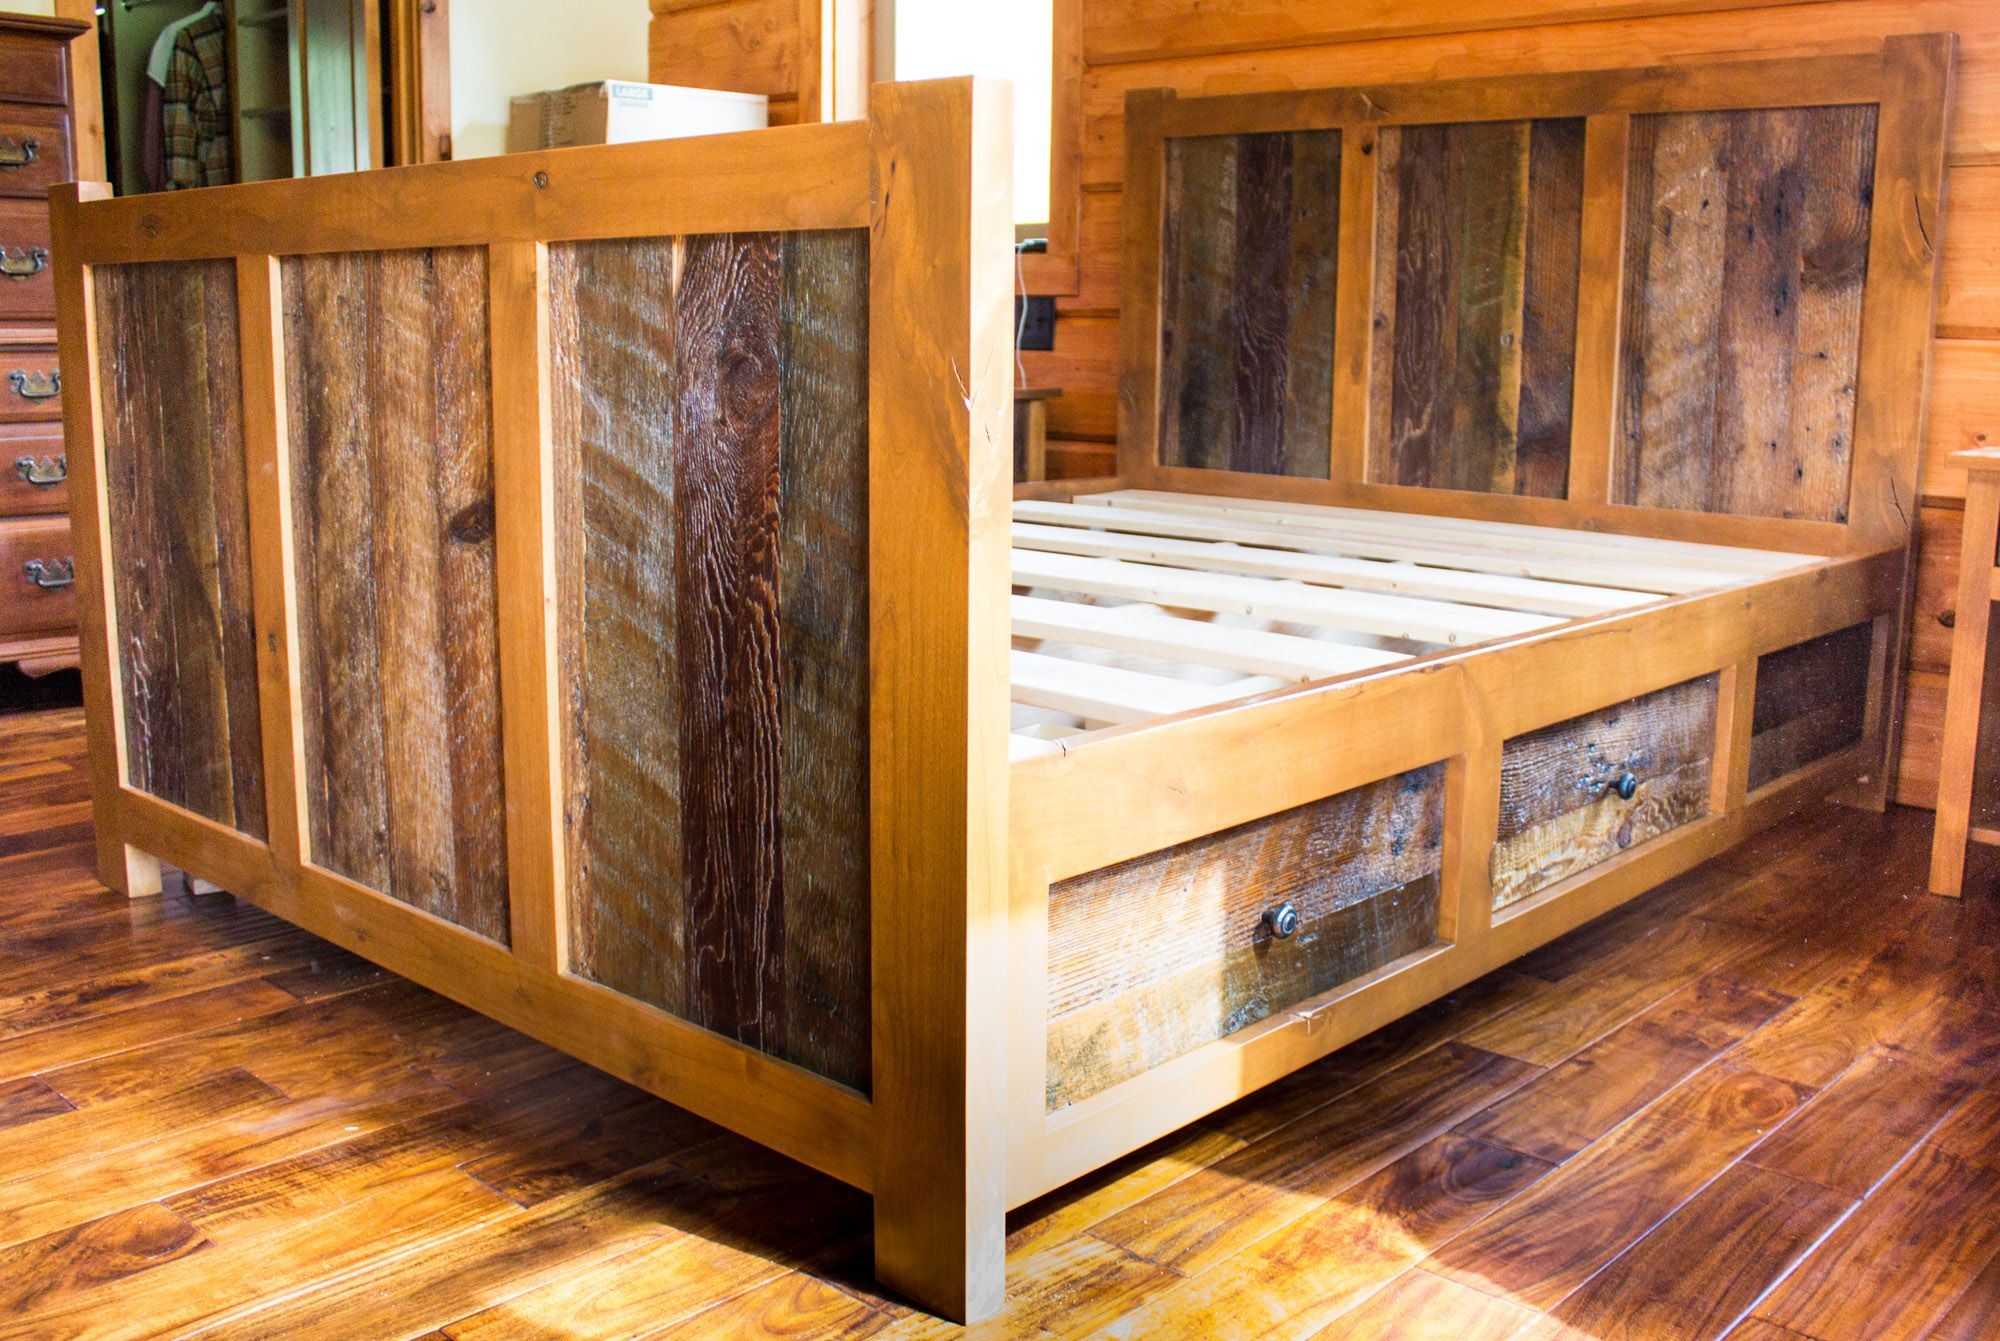 4 Drawer Rustic Reclaimed Barn Wood Platform Queen Bed By Bobby Louviere